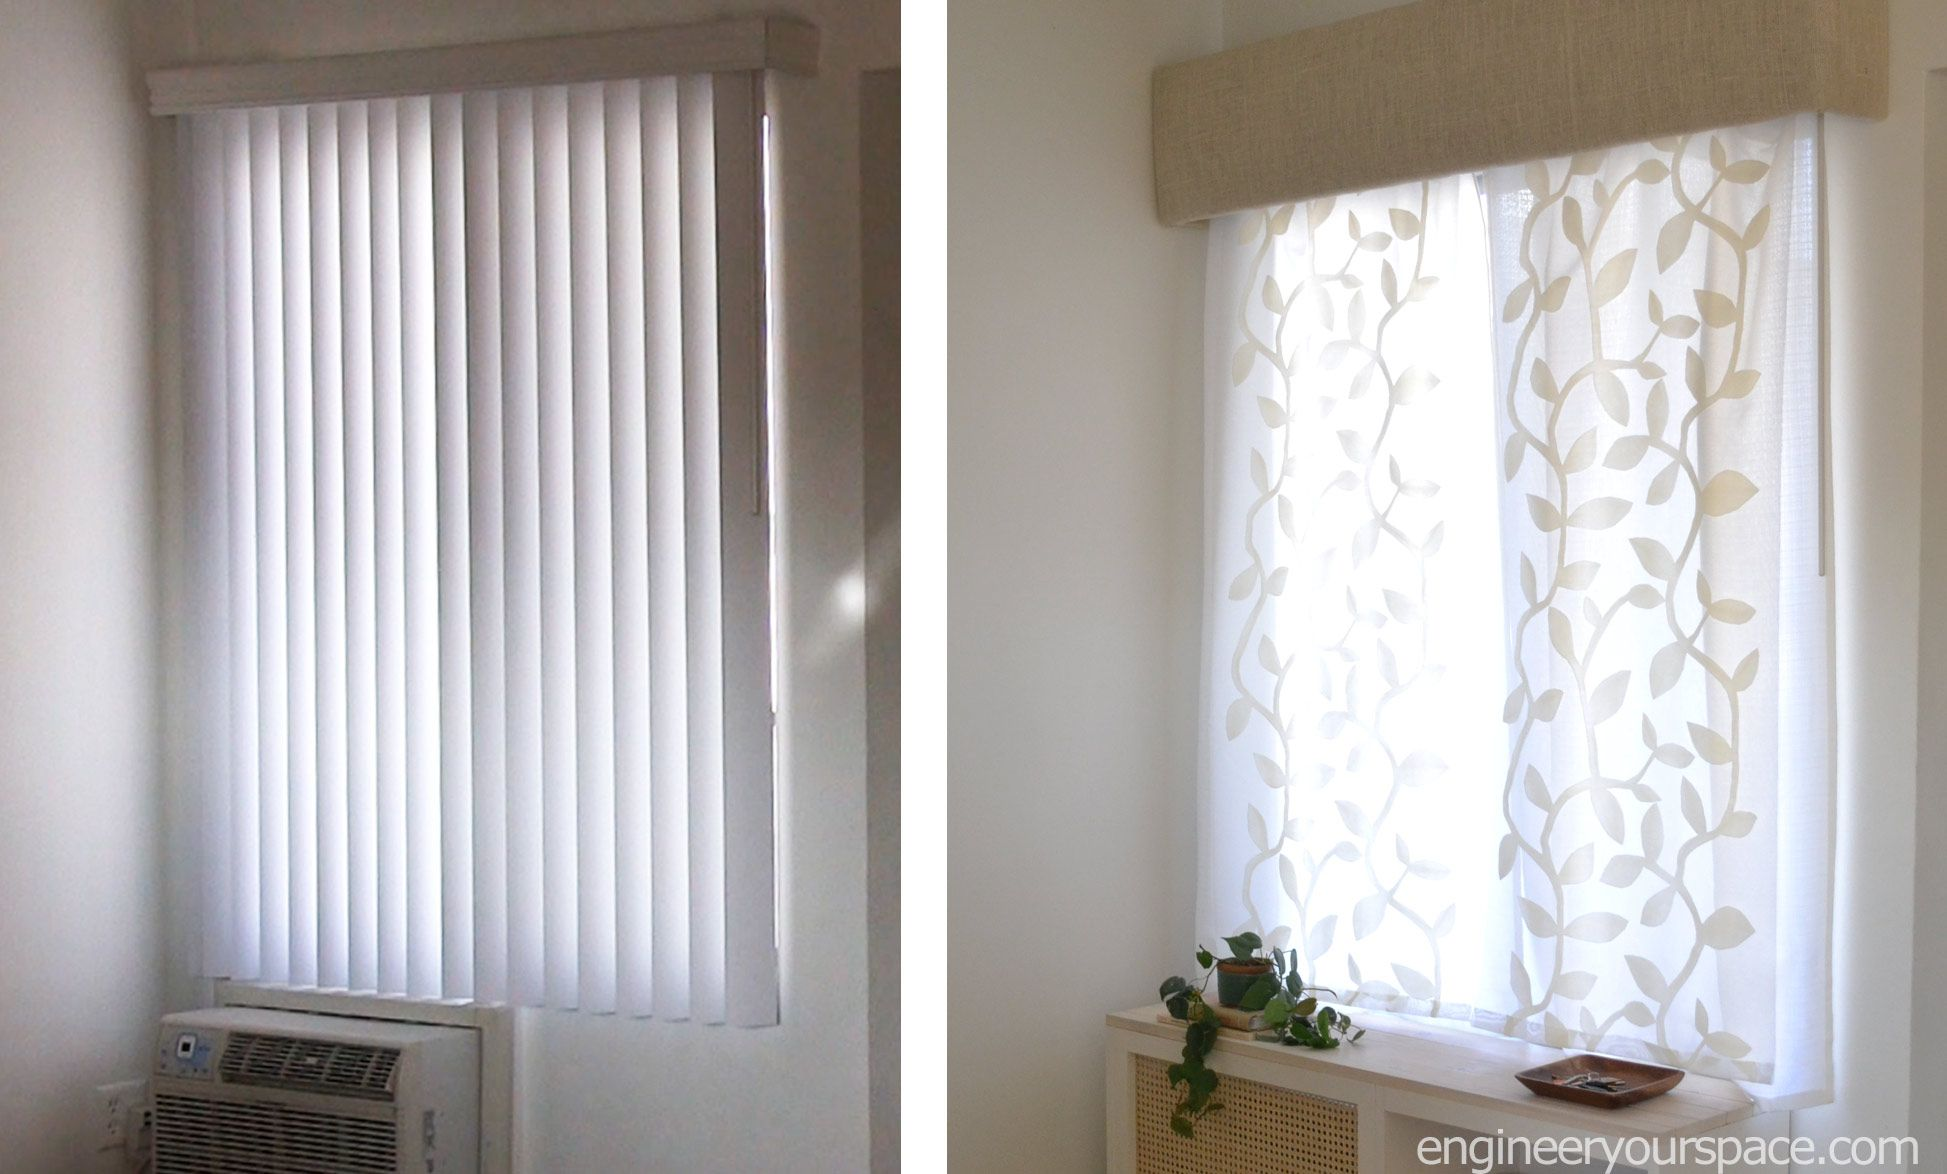 How To Hide Or Replace Vertical Blinds With Curtains In Minutes